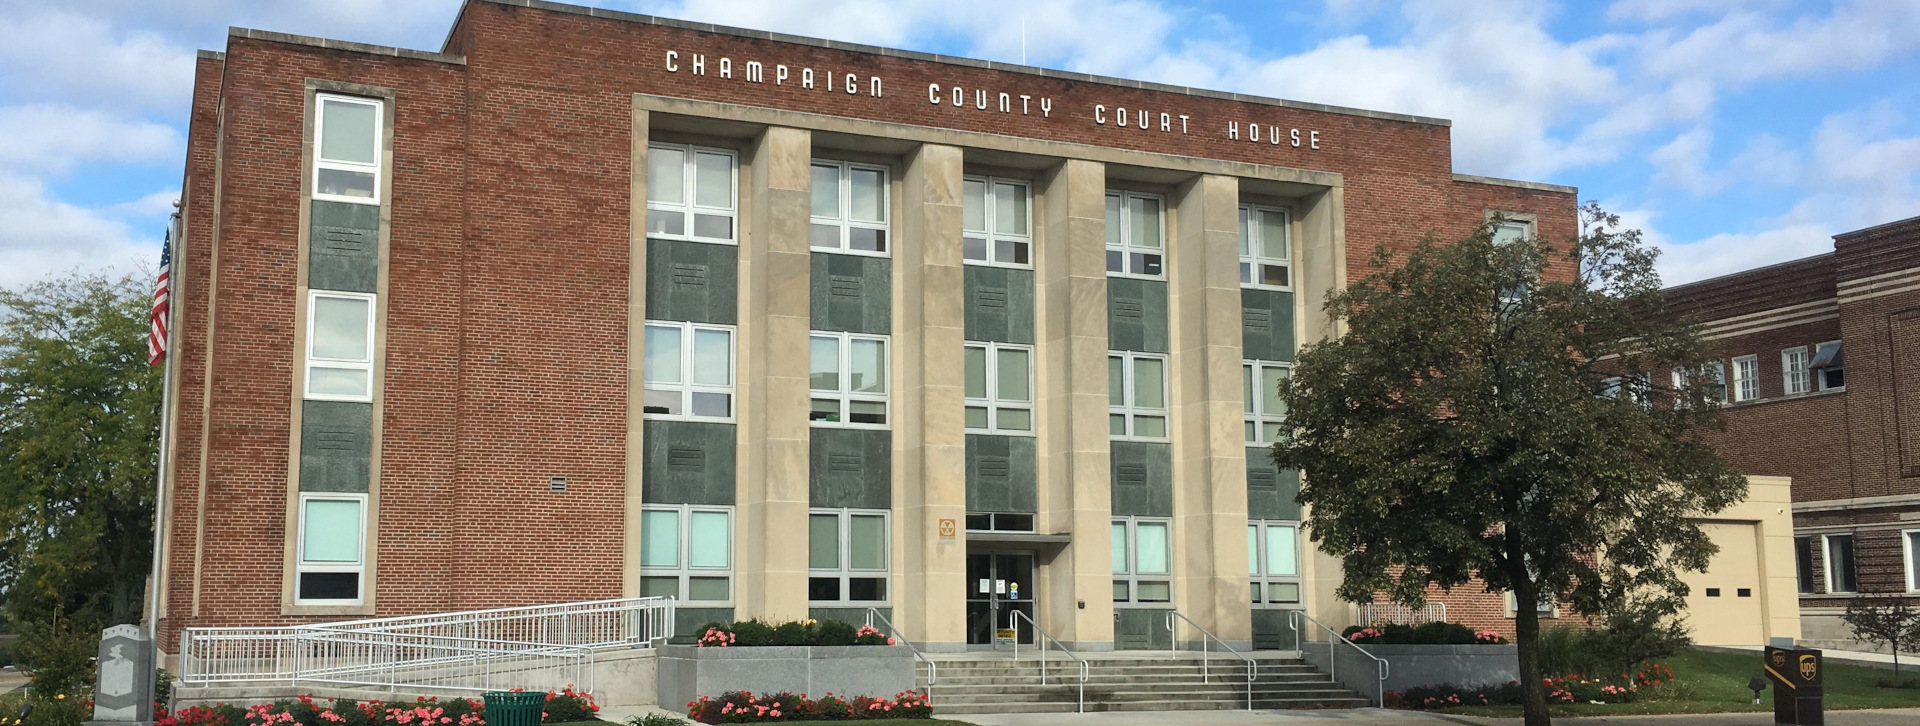 probate records in illinois champaign county